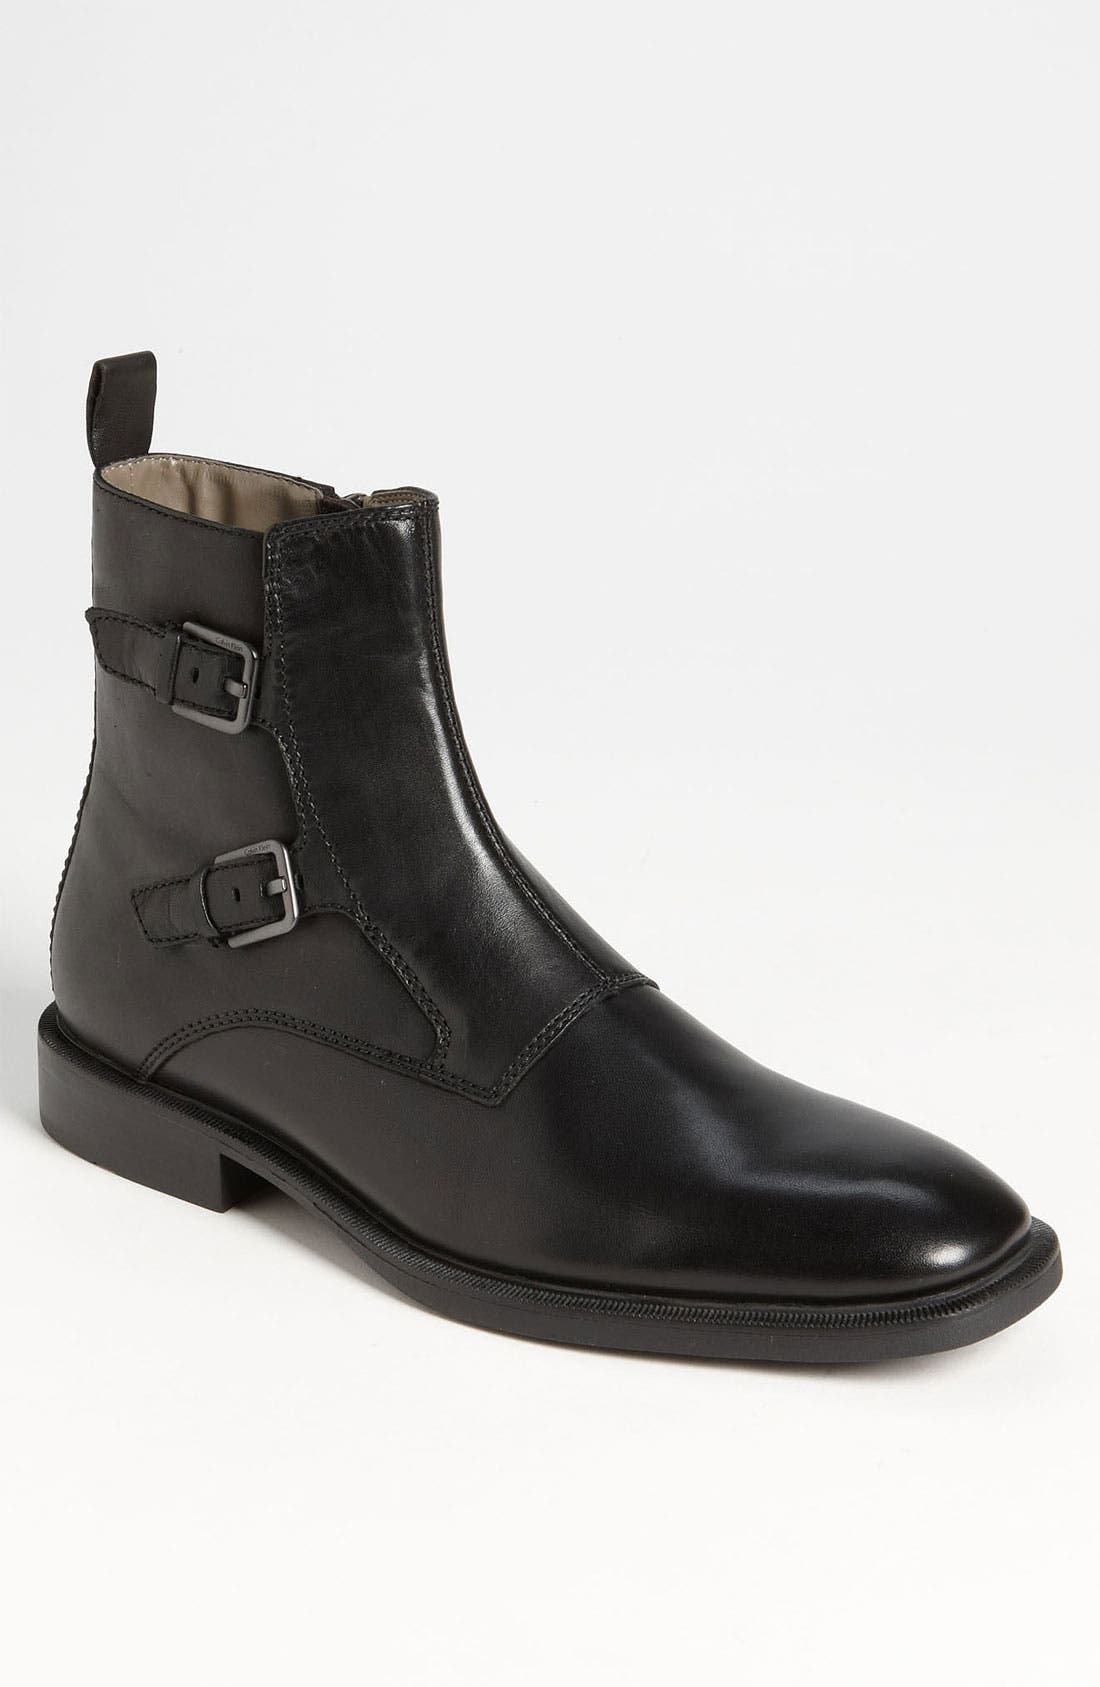 Alternate Image 1 Selected - Calvin Klein 'Richard' Double Monk Strap Boot (Online Only)